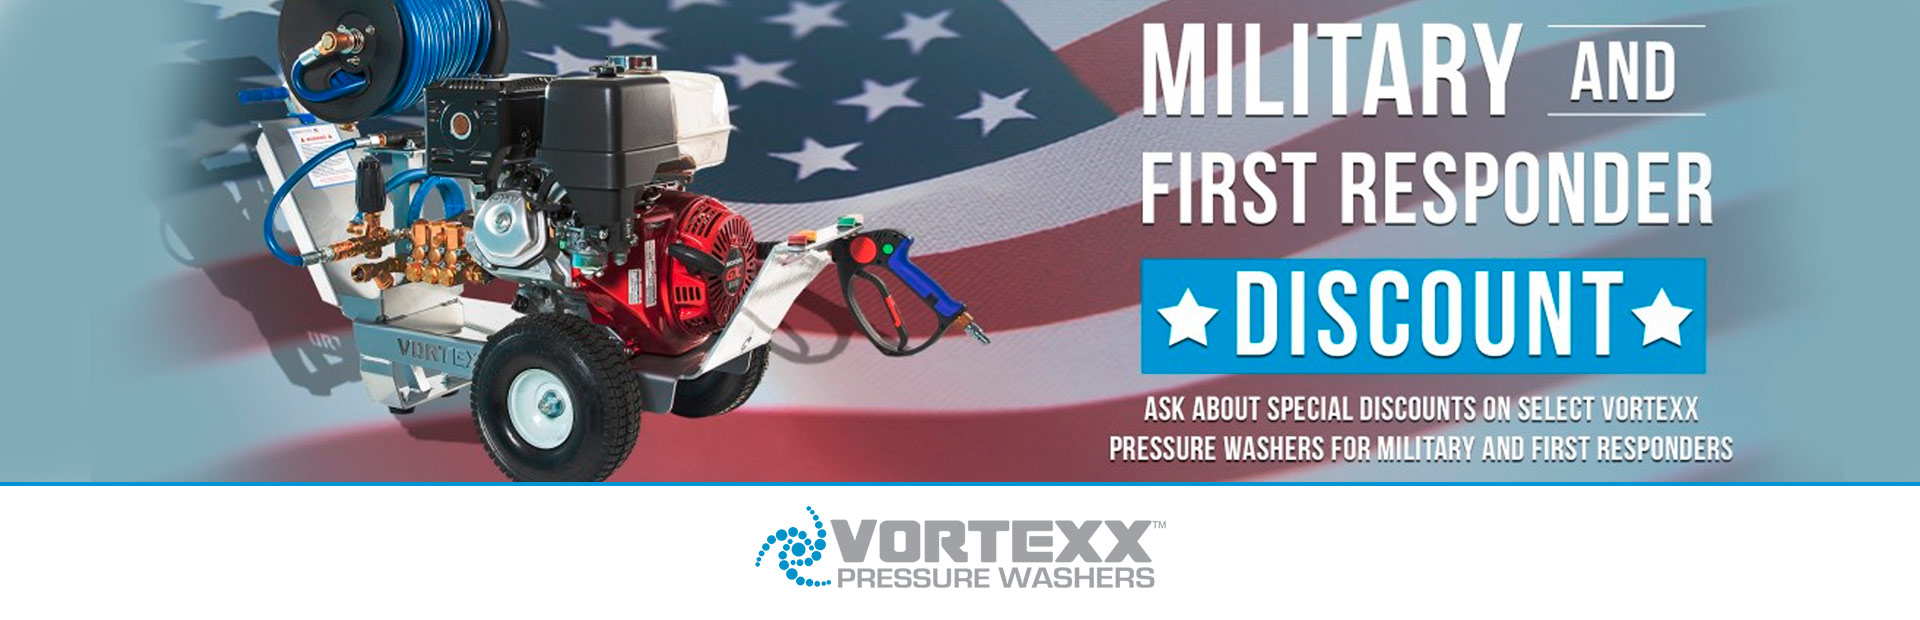 Vortexx: Military Service & First Responder Appreciation